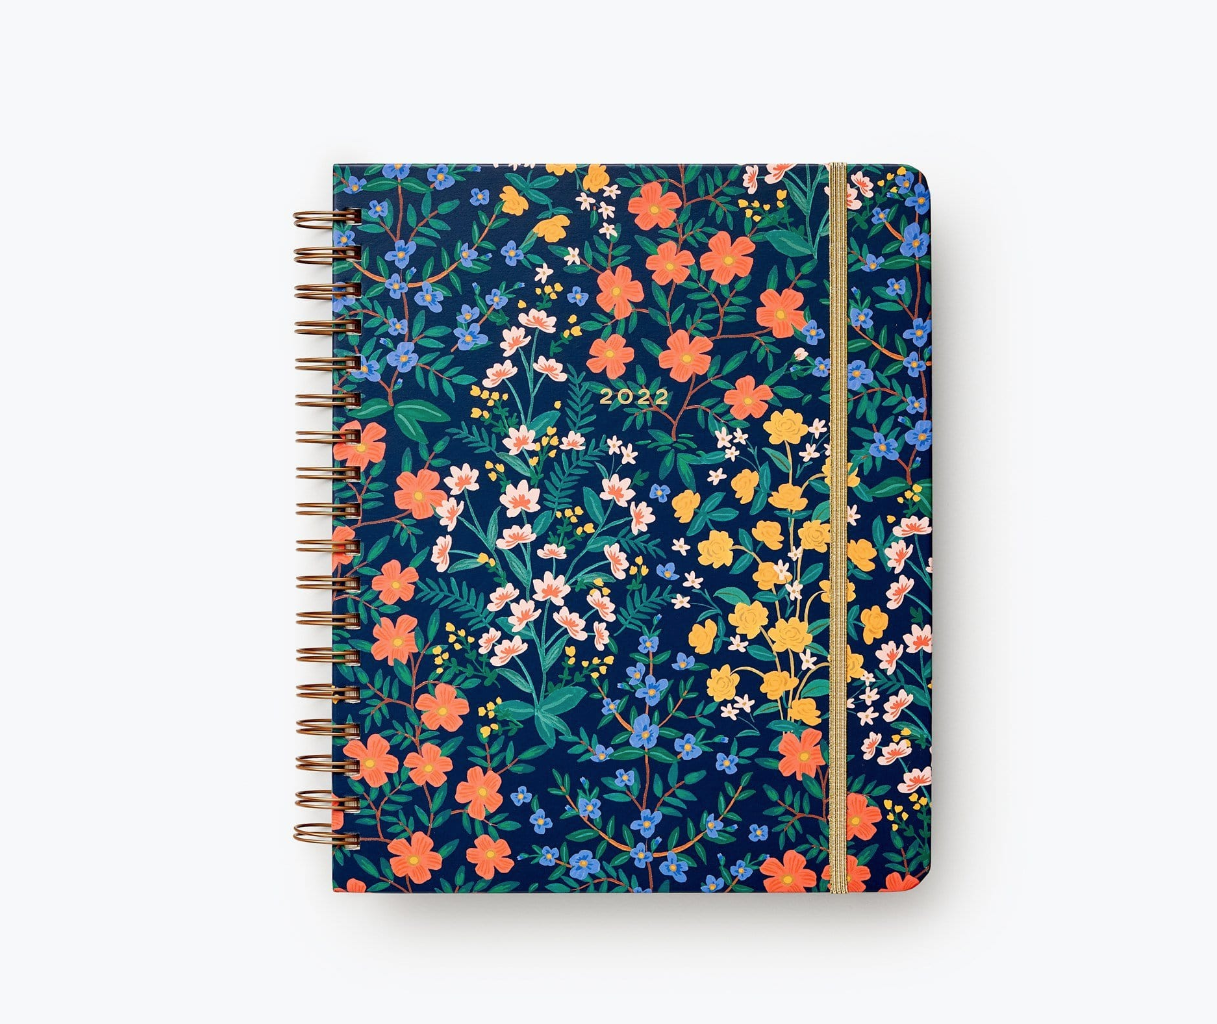 Rifle Paper Co - RP RP AG17 - 2022 Wildwood Hardcover Spiral 17 Month Planner